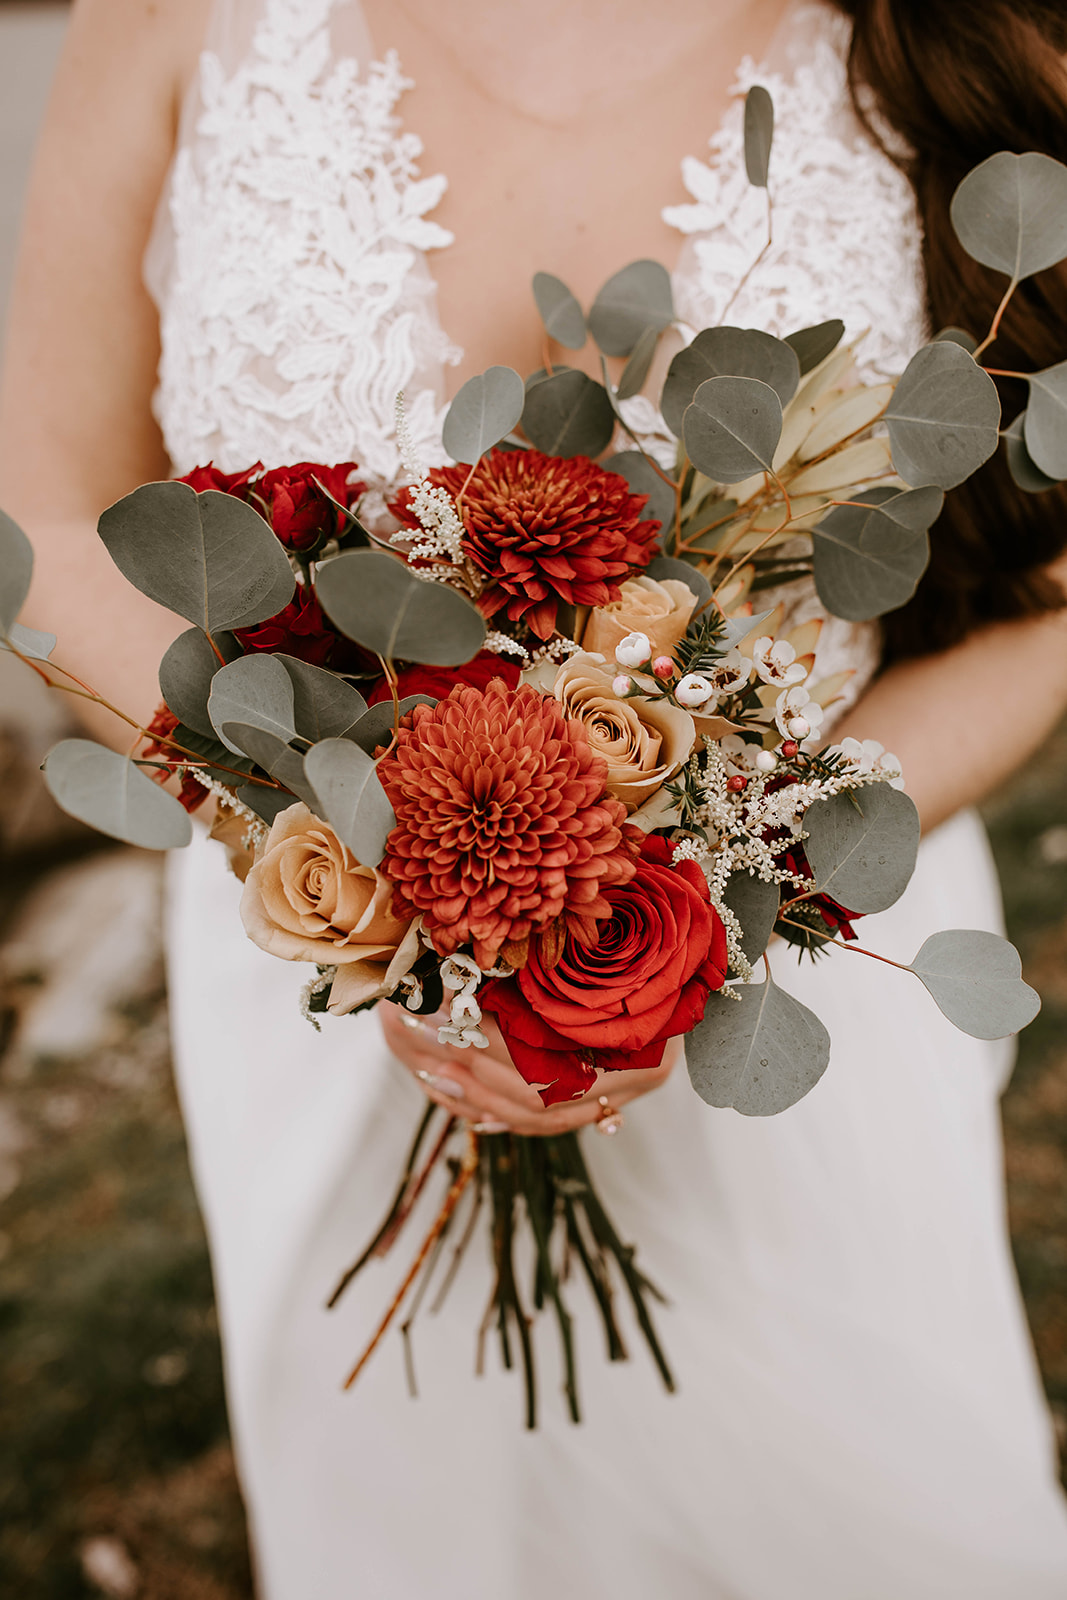 Red wedding bouquet: Surprise Vow Renewal by Tara Winstead Photography featured on Nashville Bride Guide